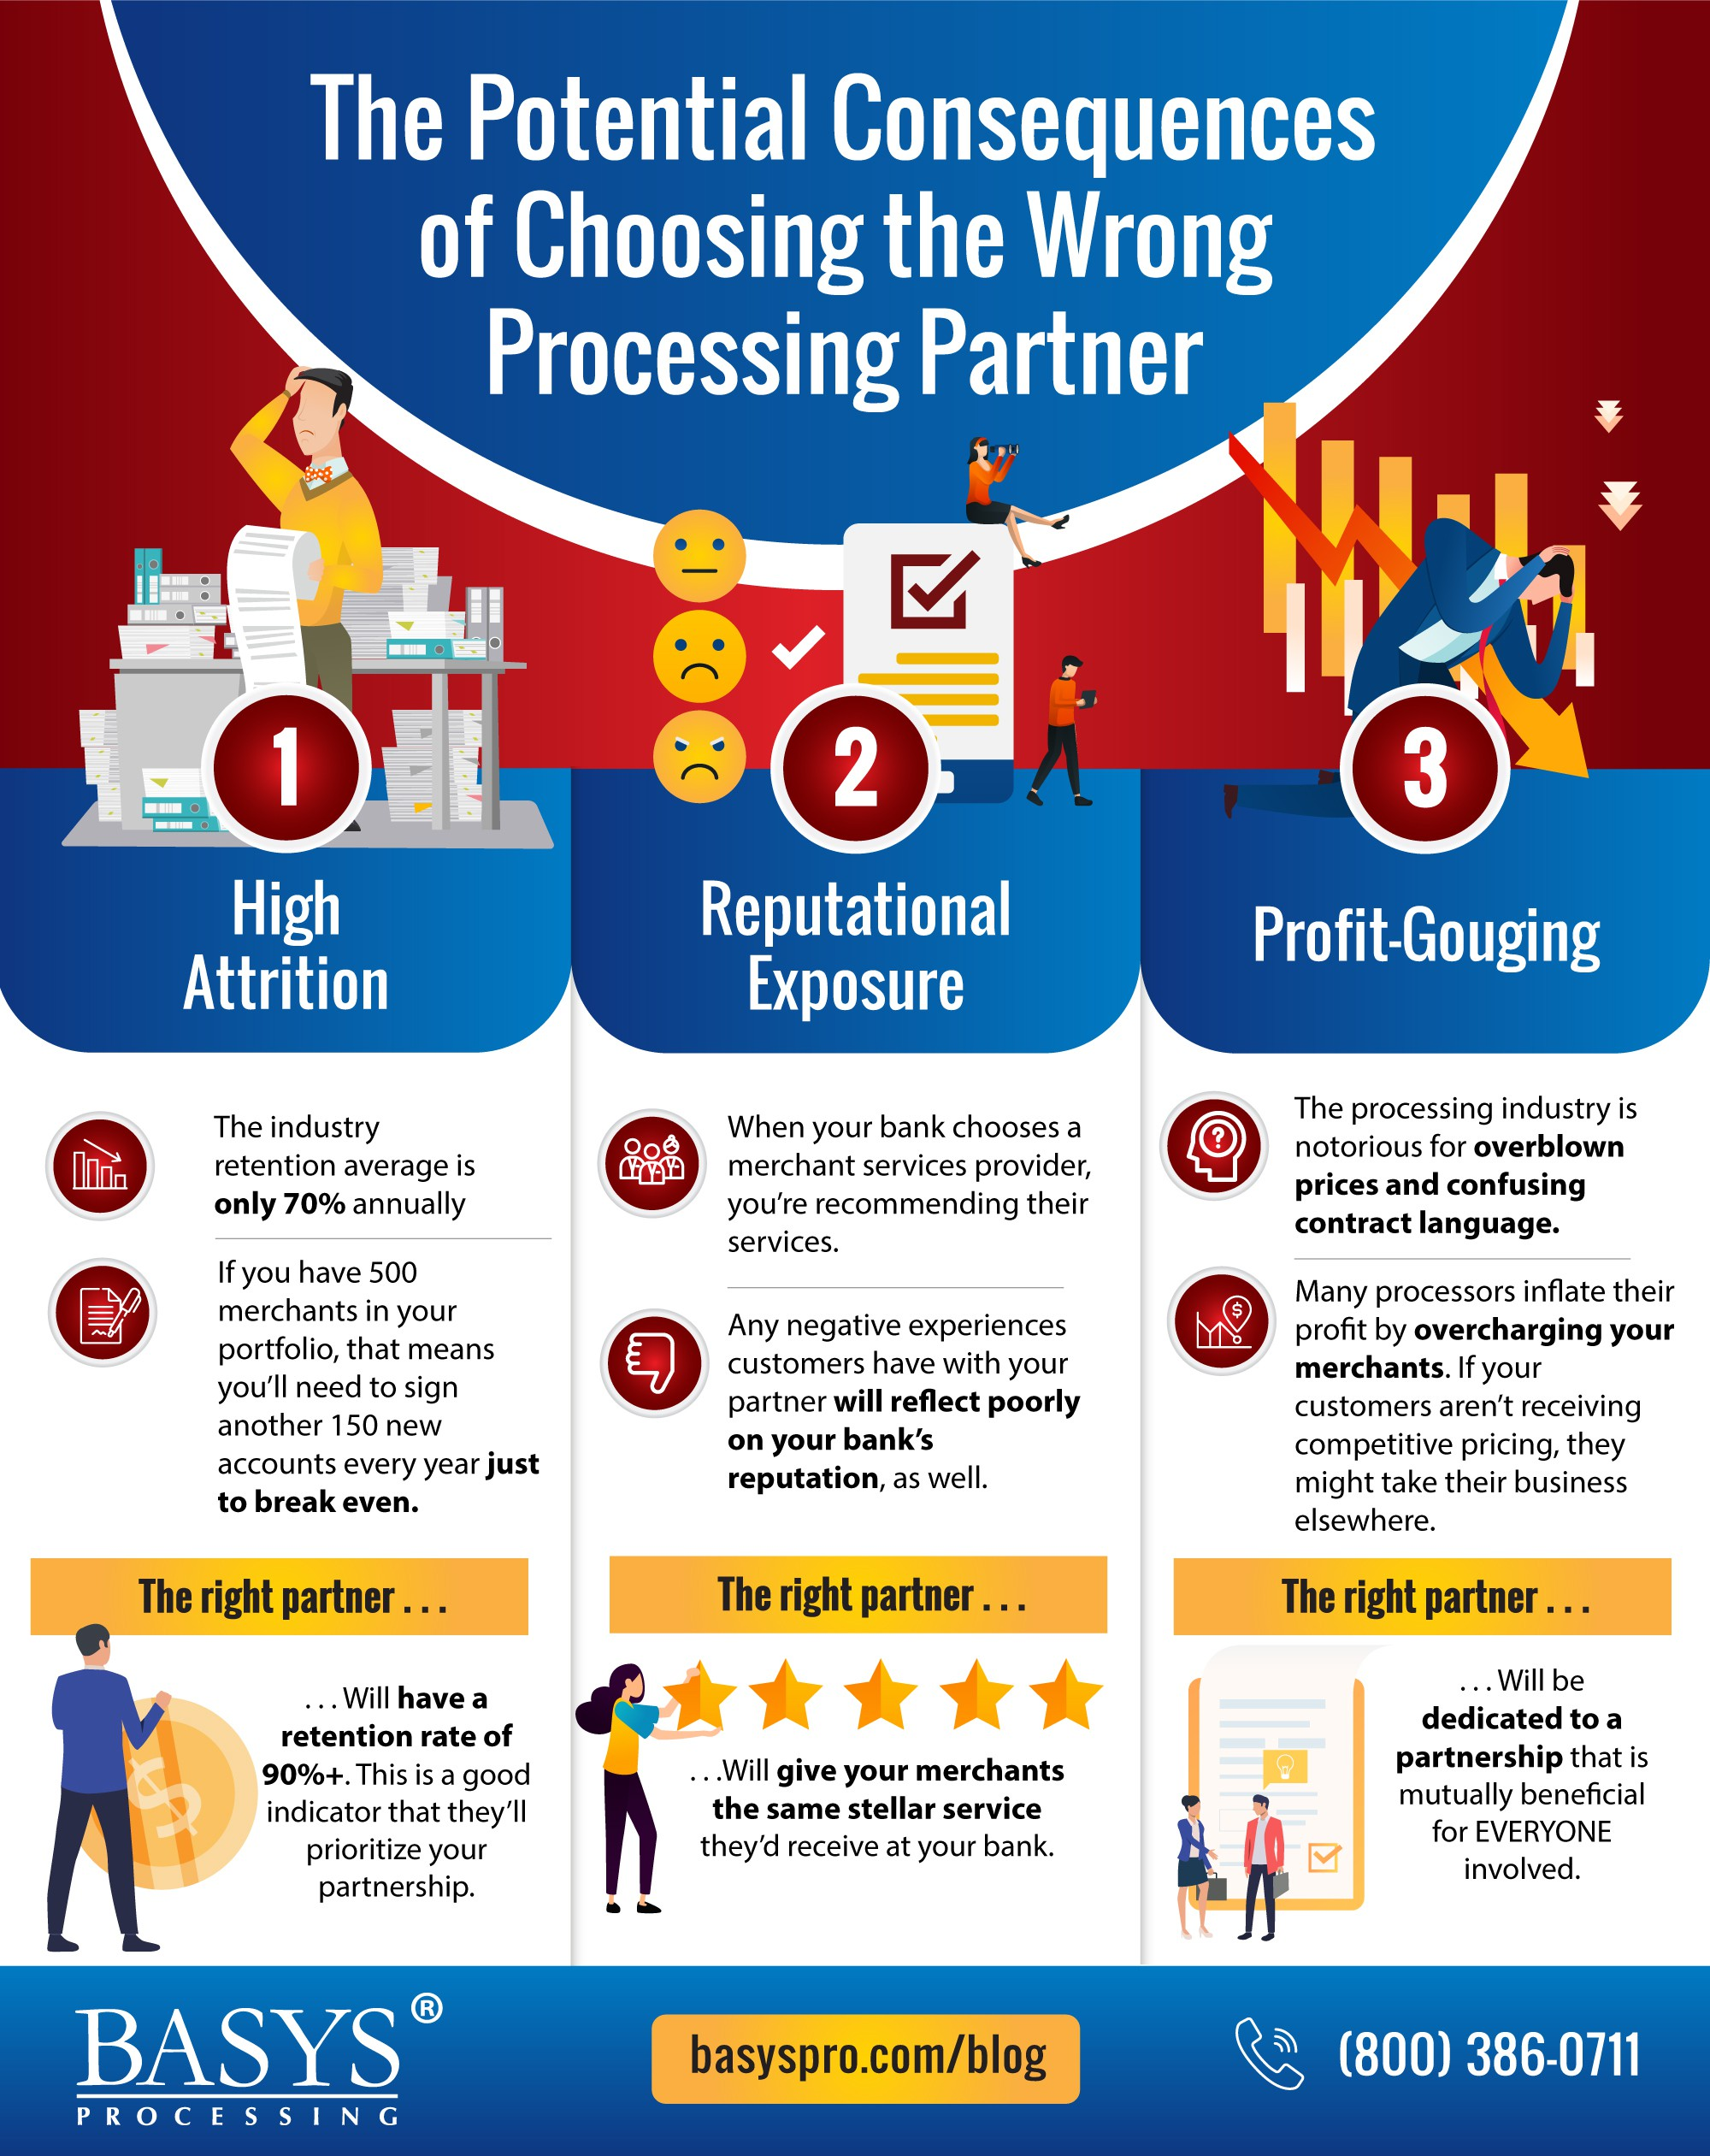 The Potential Consequences of Choosing the Wrong Processing Partner